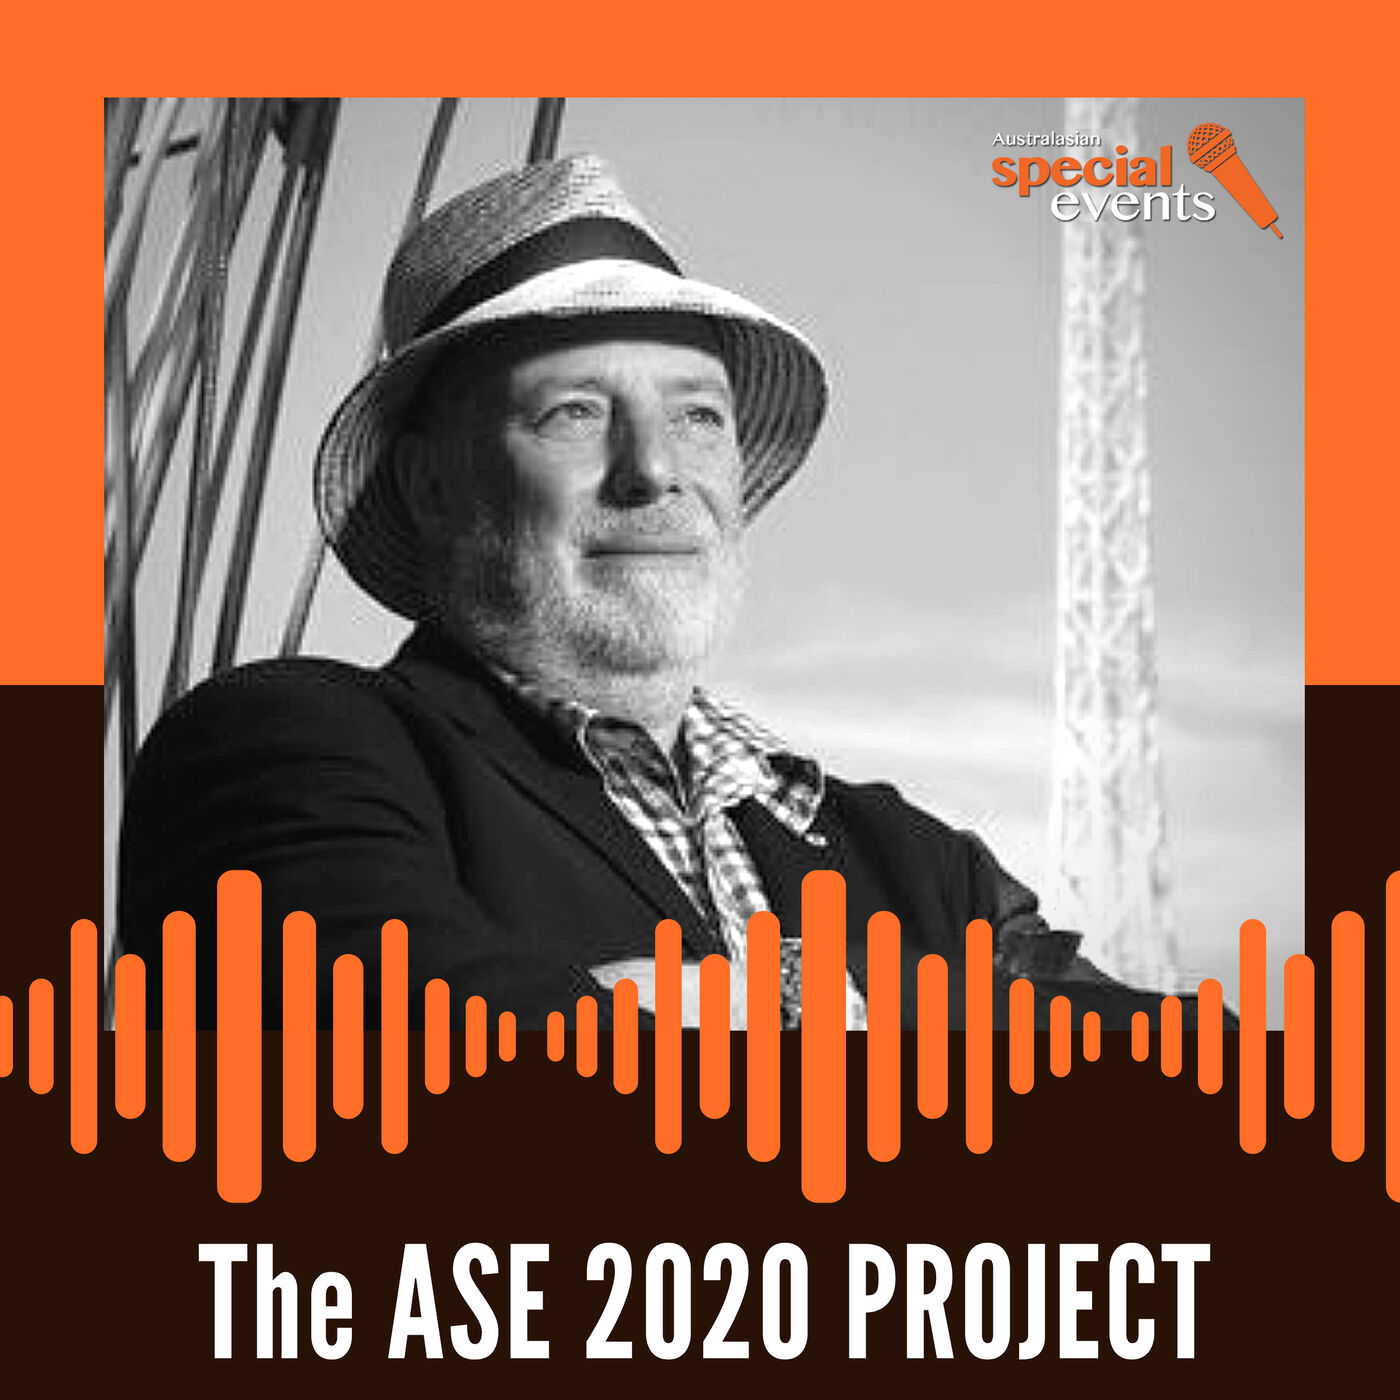 Ep 13a: Andrew Walsh AM - storyteller